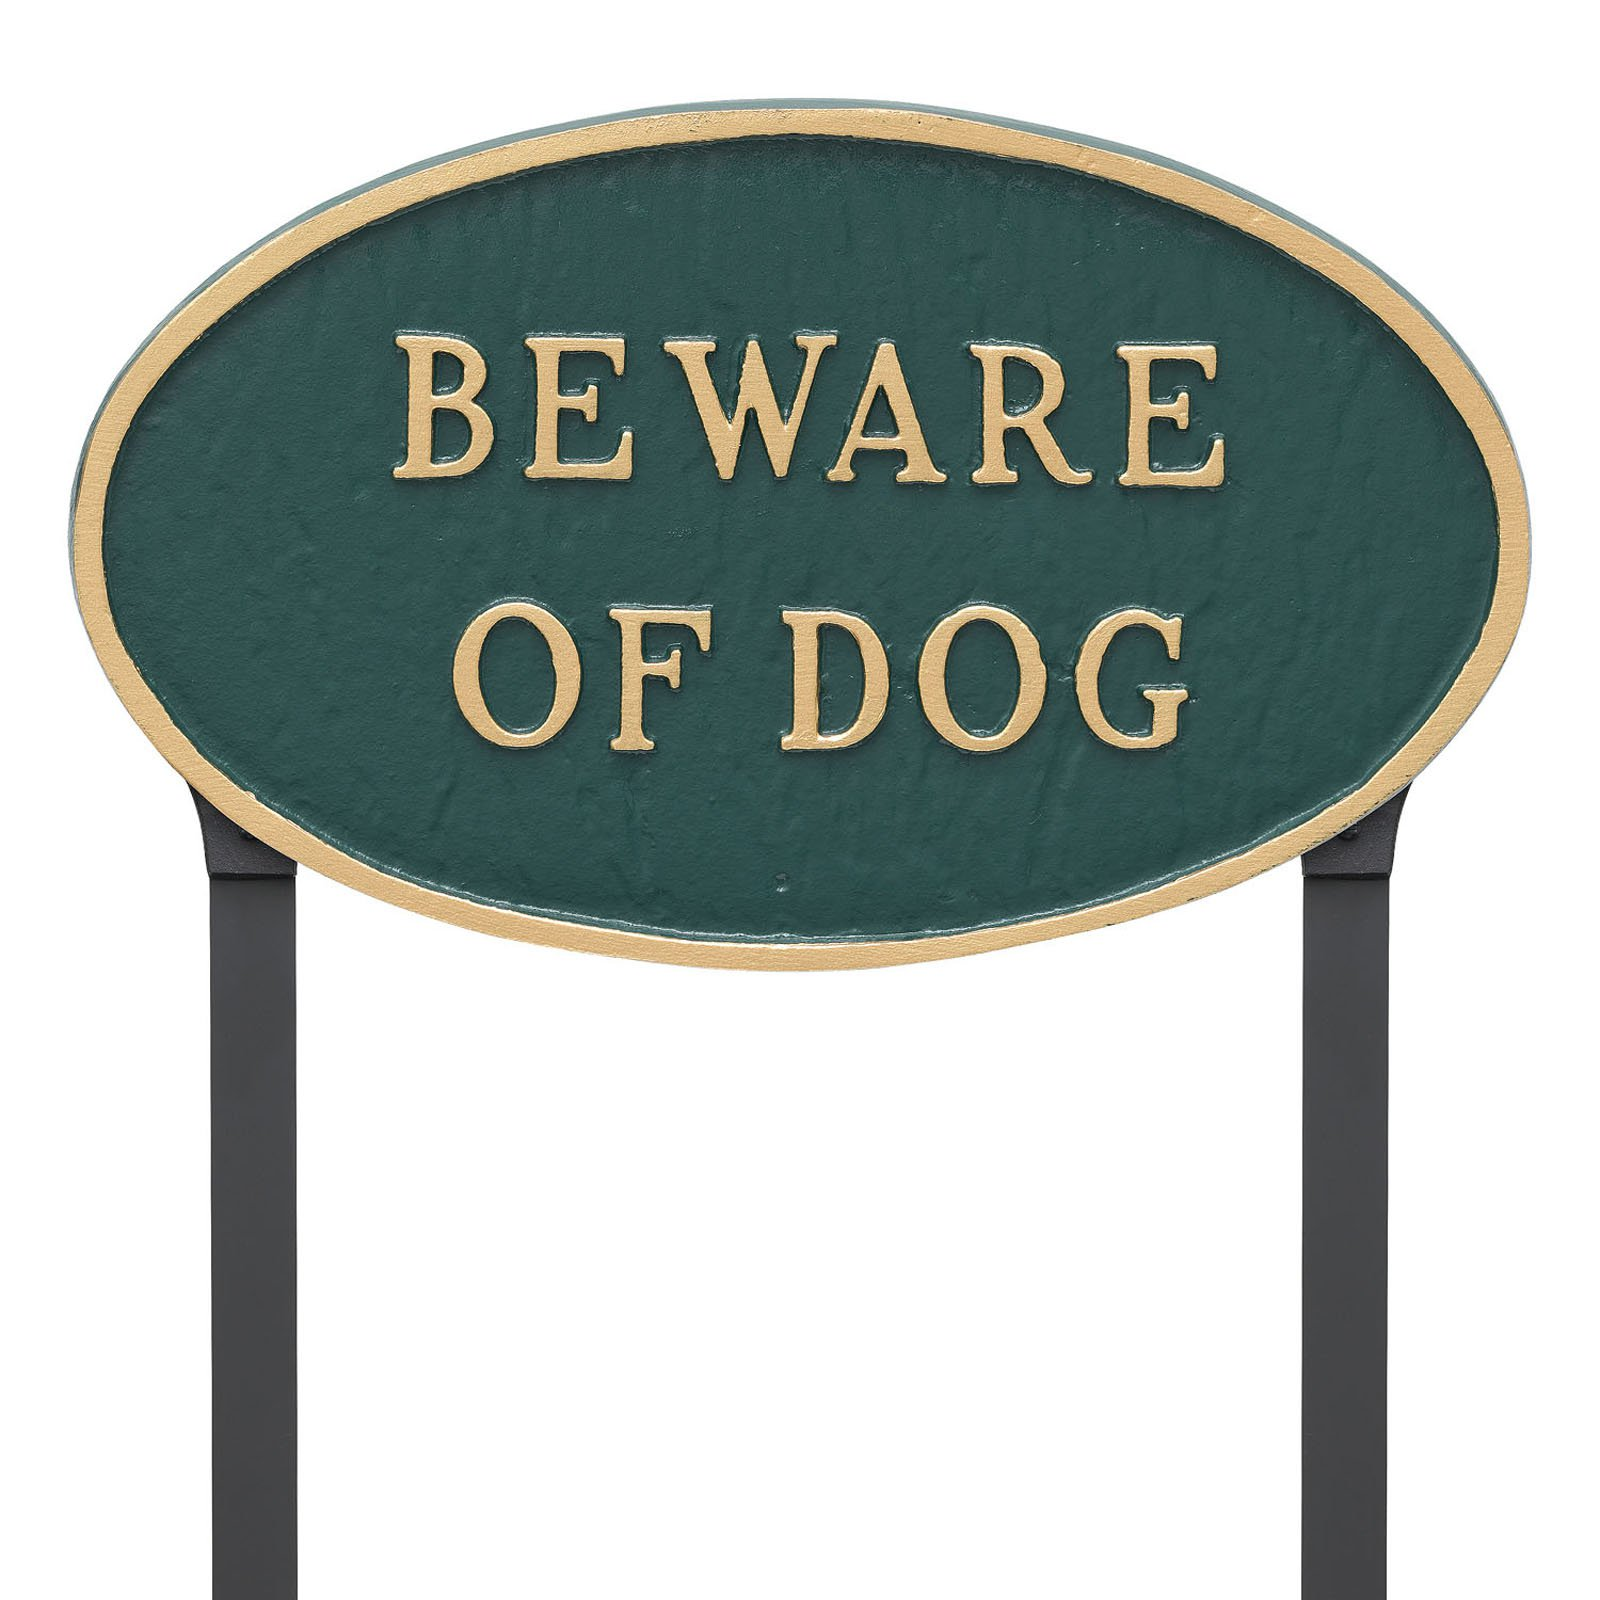 Montague Metal Products Beware Of Dog Oval Lawn Plaque